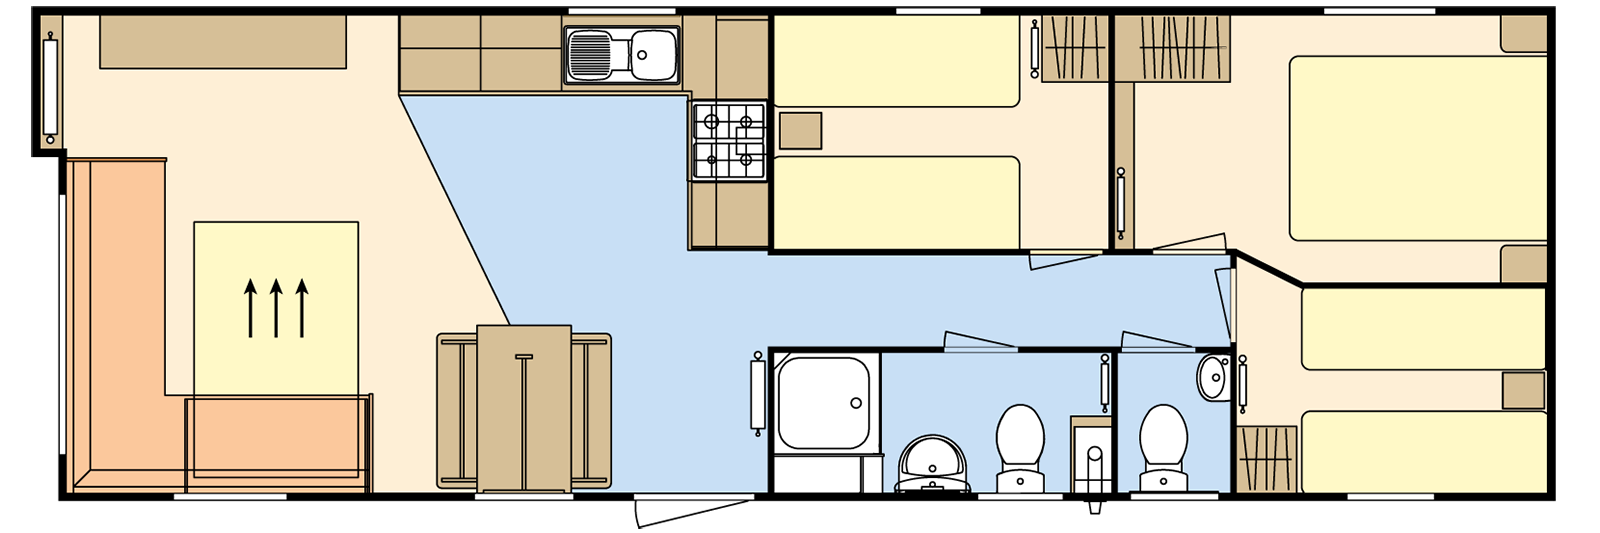 36 × 12 – 3 bedroom/8 berth